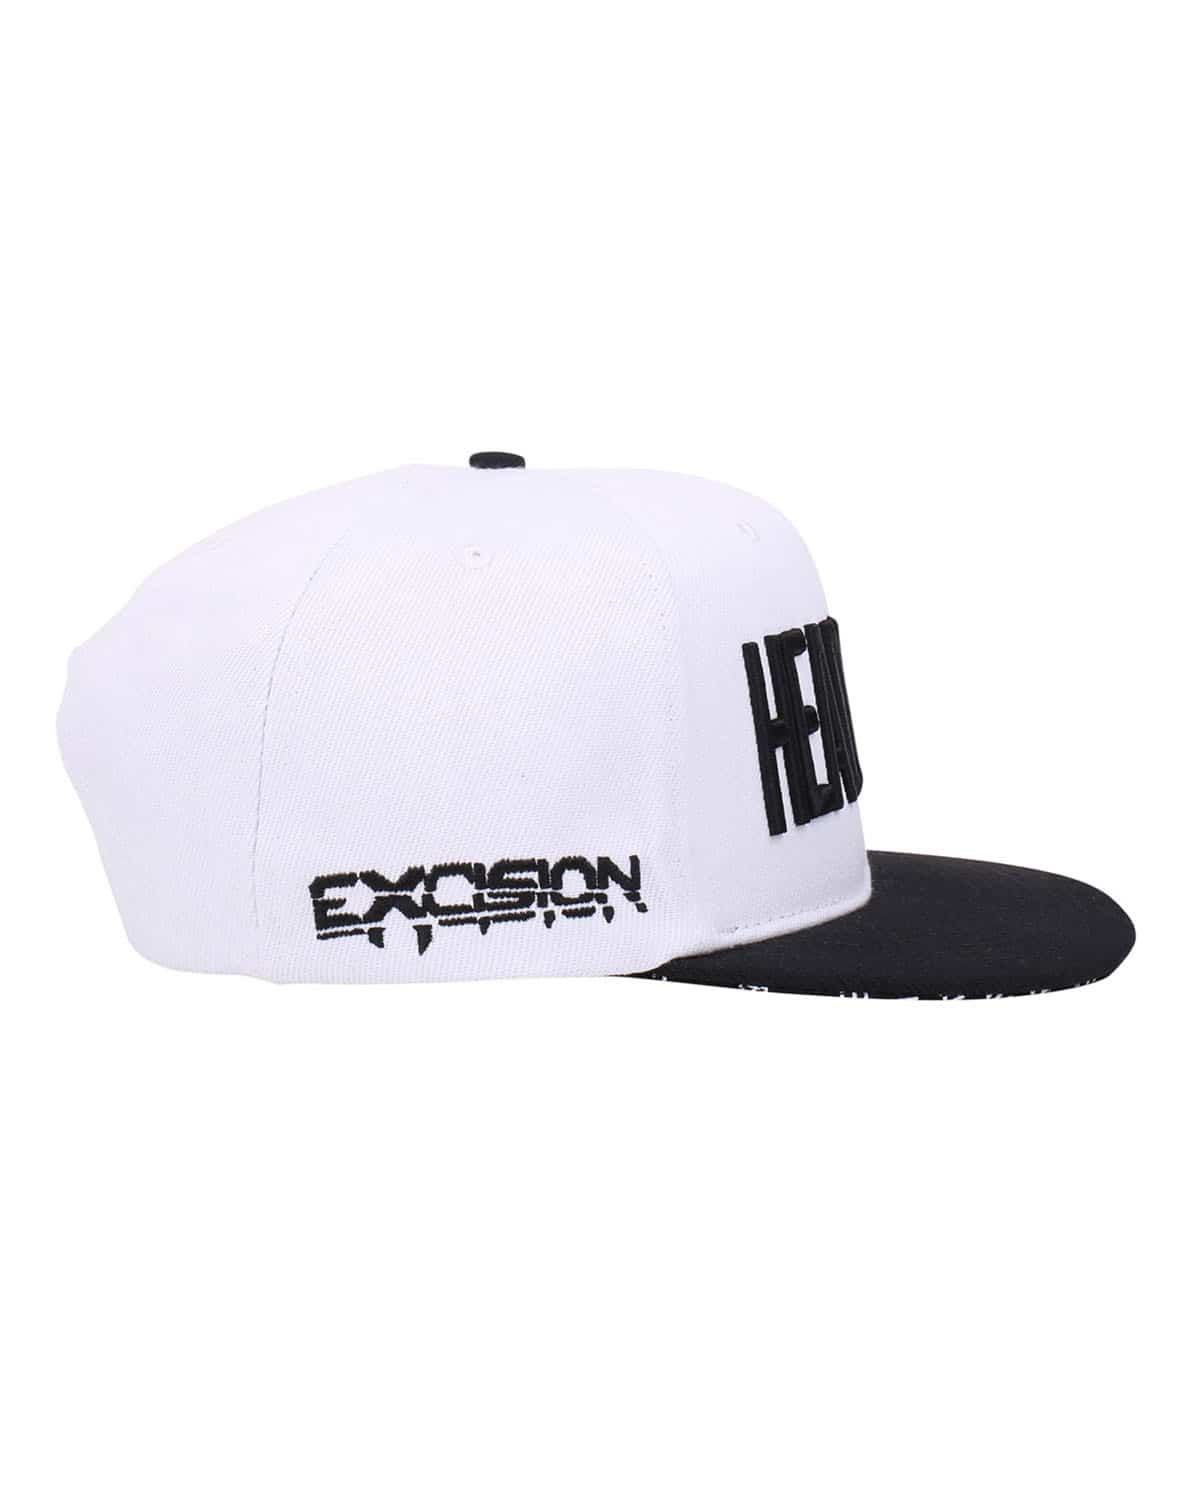 'Headbanger' Snapback - White/Black